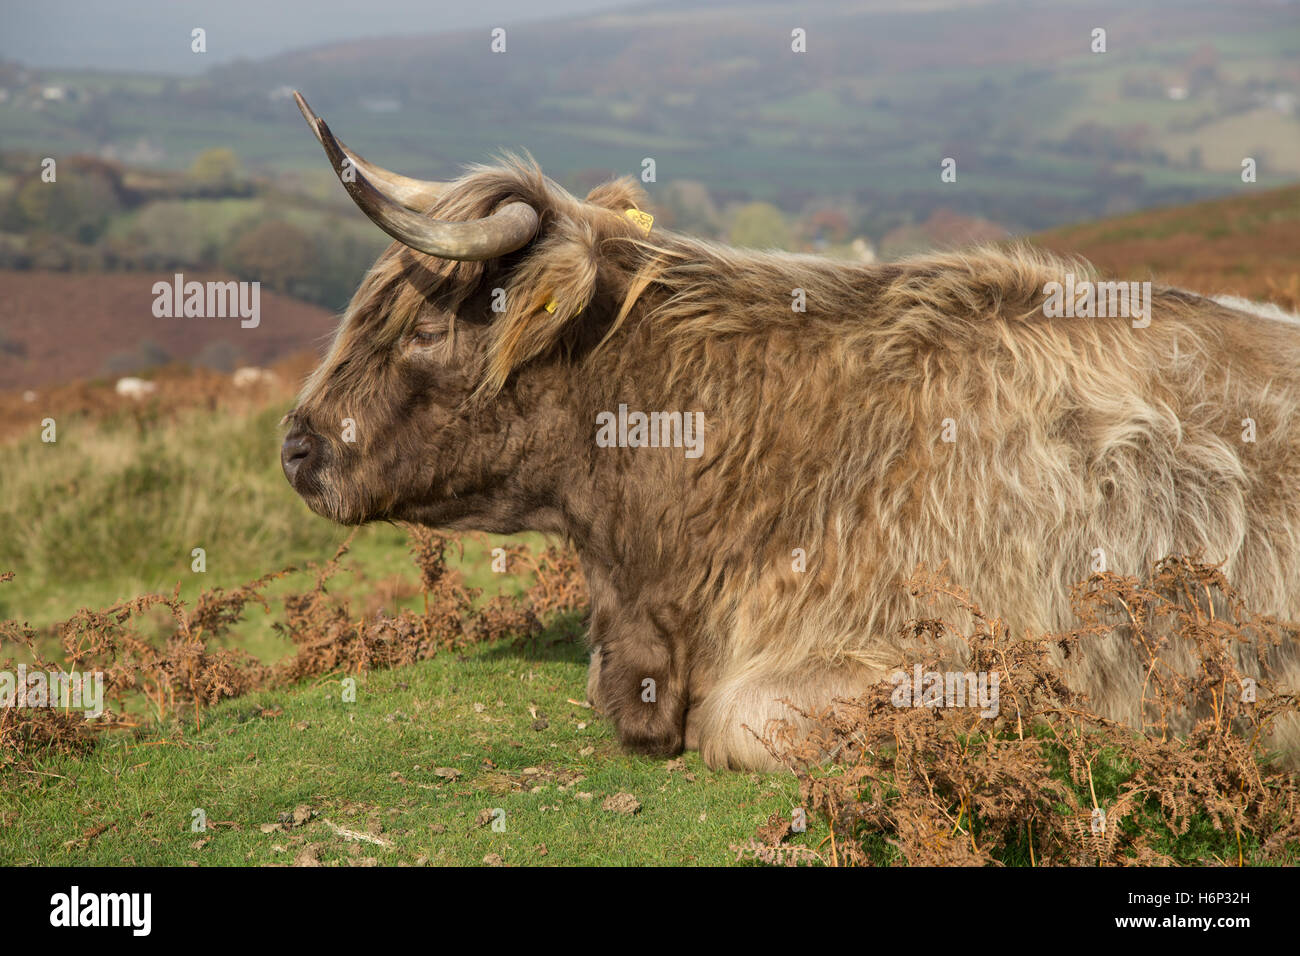 Highland longhorn cattle on Dartmoor, Devon, UK. - Stock Image